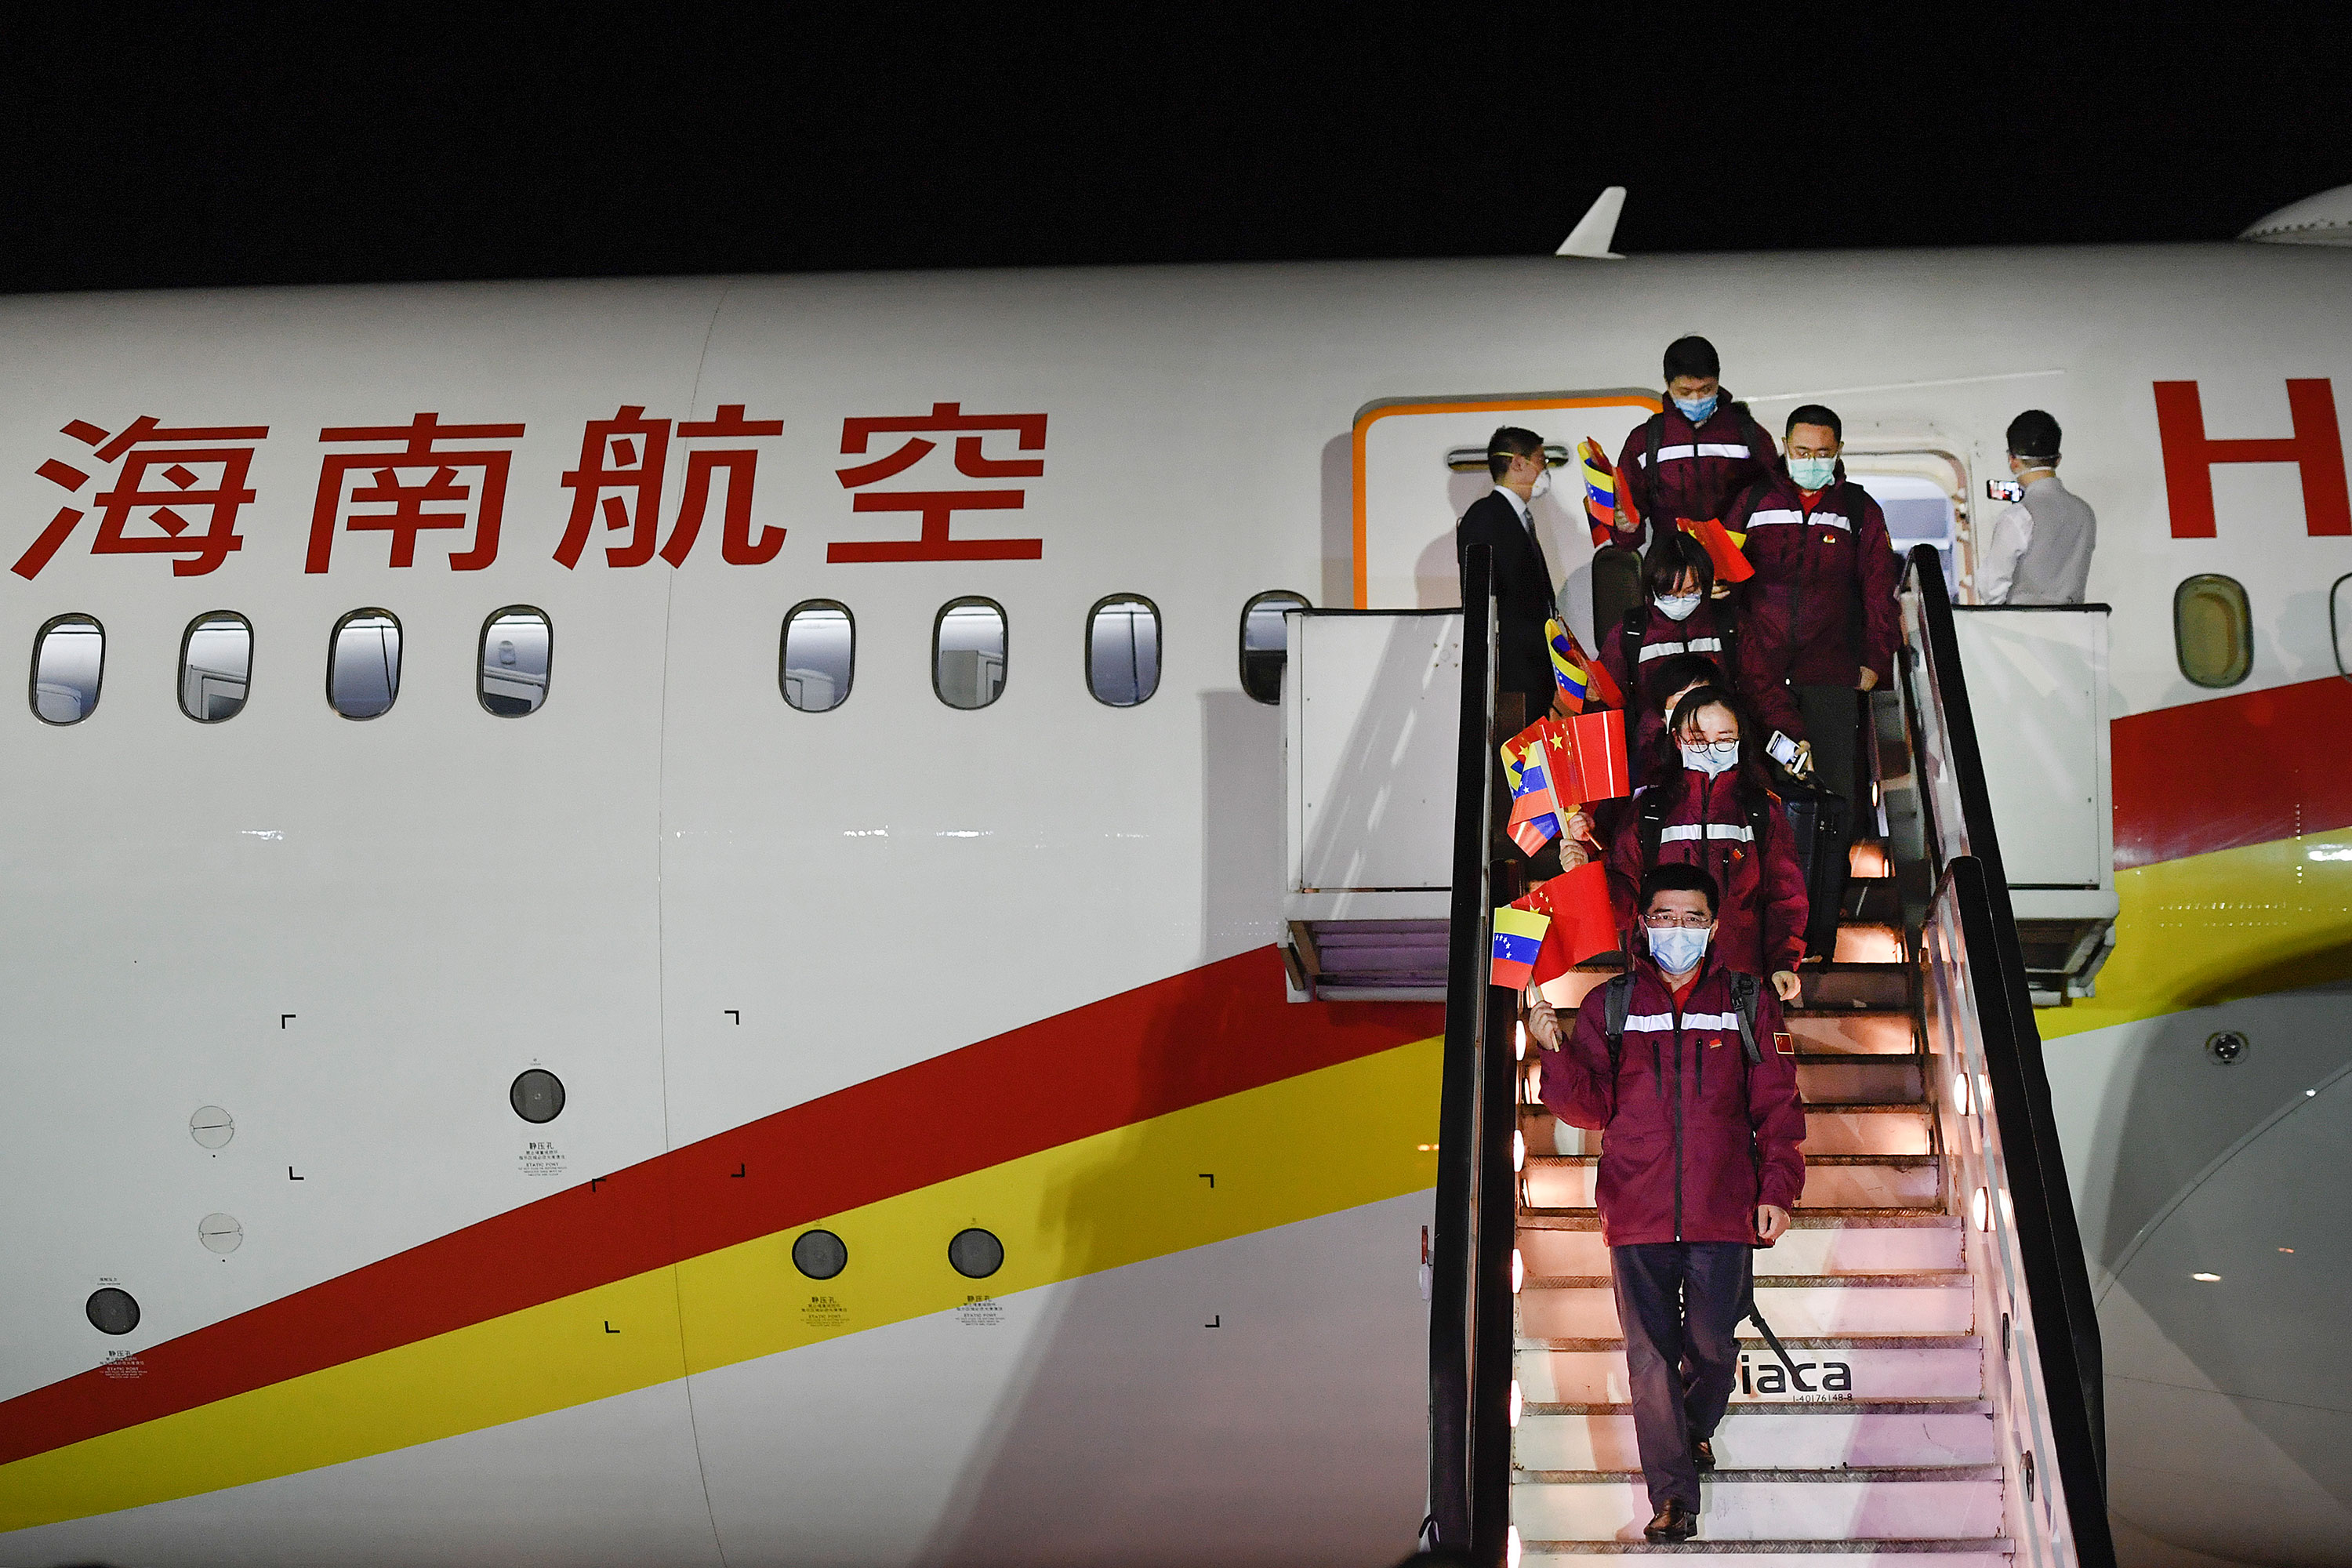 Medical specialists from China arrive at the Simon Bolivar International Airport in La Guaira, Venezuela, on March 30.